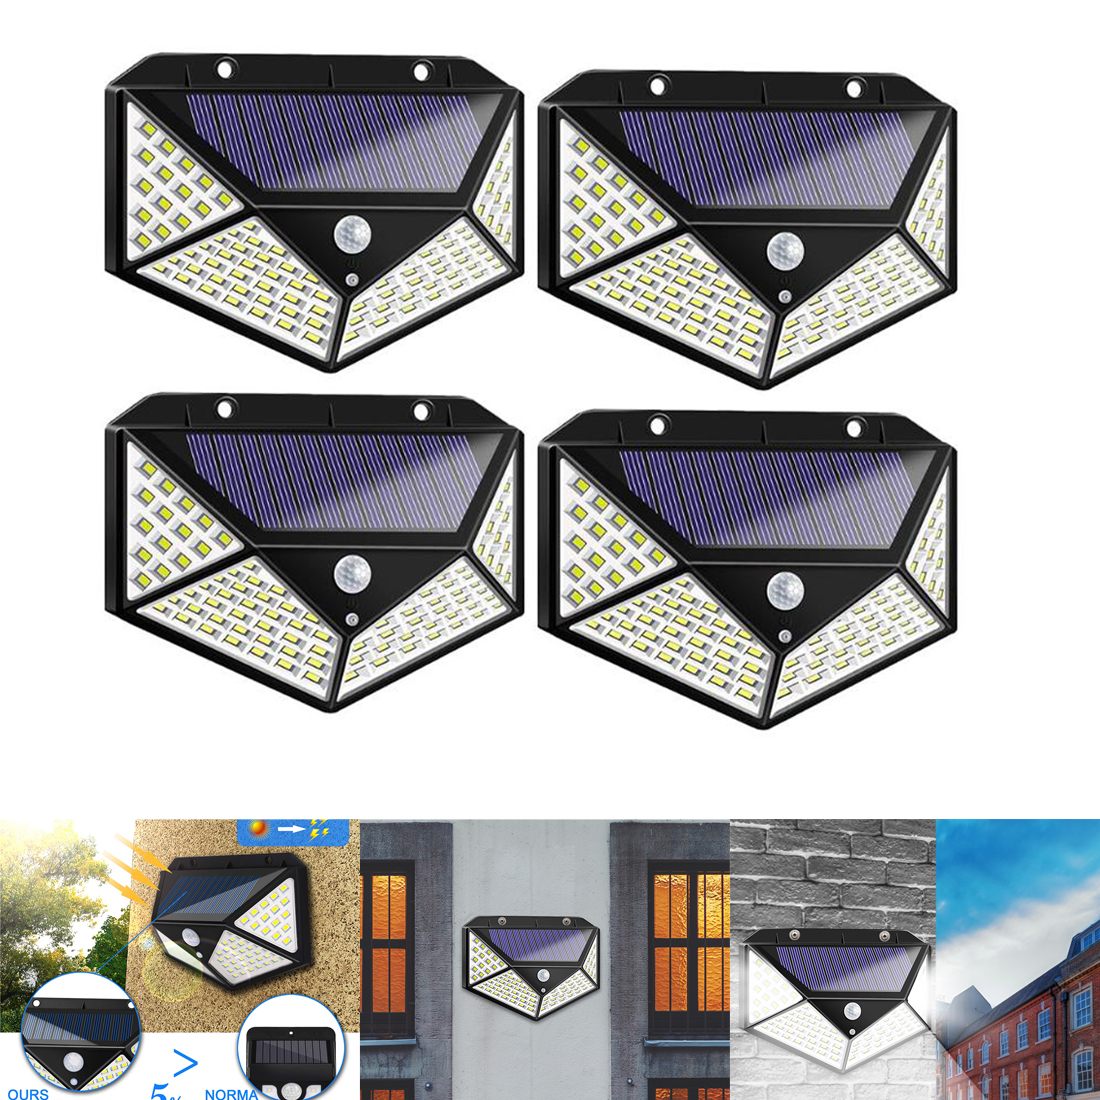 100LED Outdoor Solar Light Motion Sensor Waterproof Yard Security LED Solar Lamp For Outdoor Garden Street Lights Dropshipping